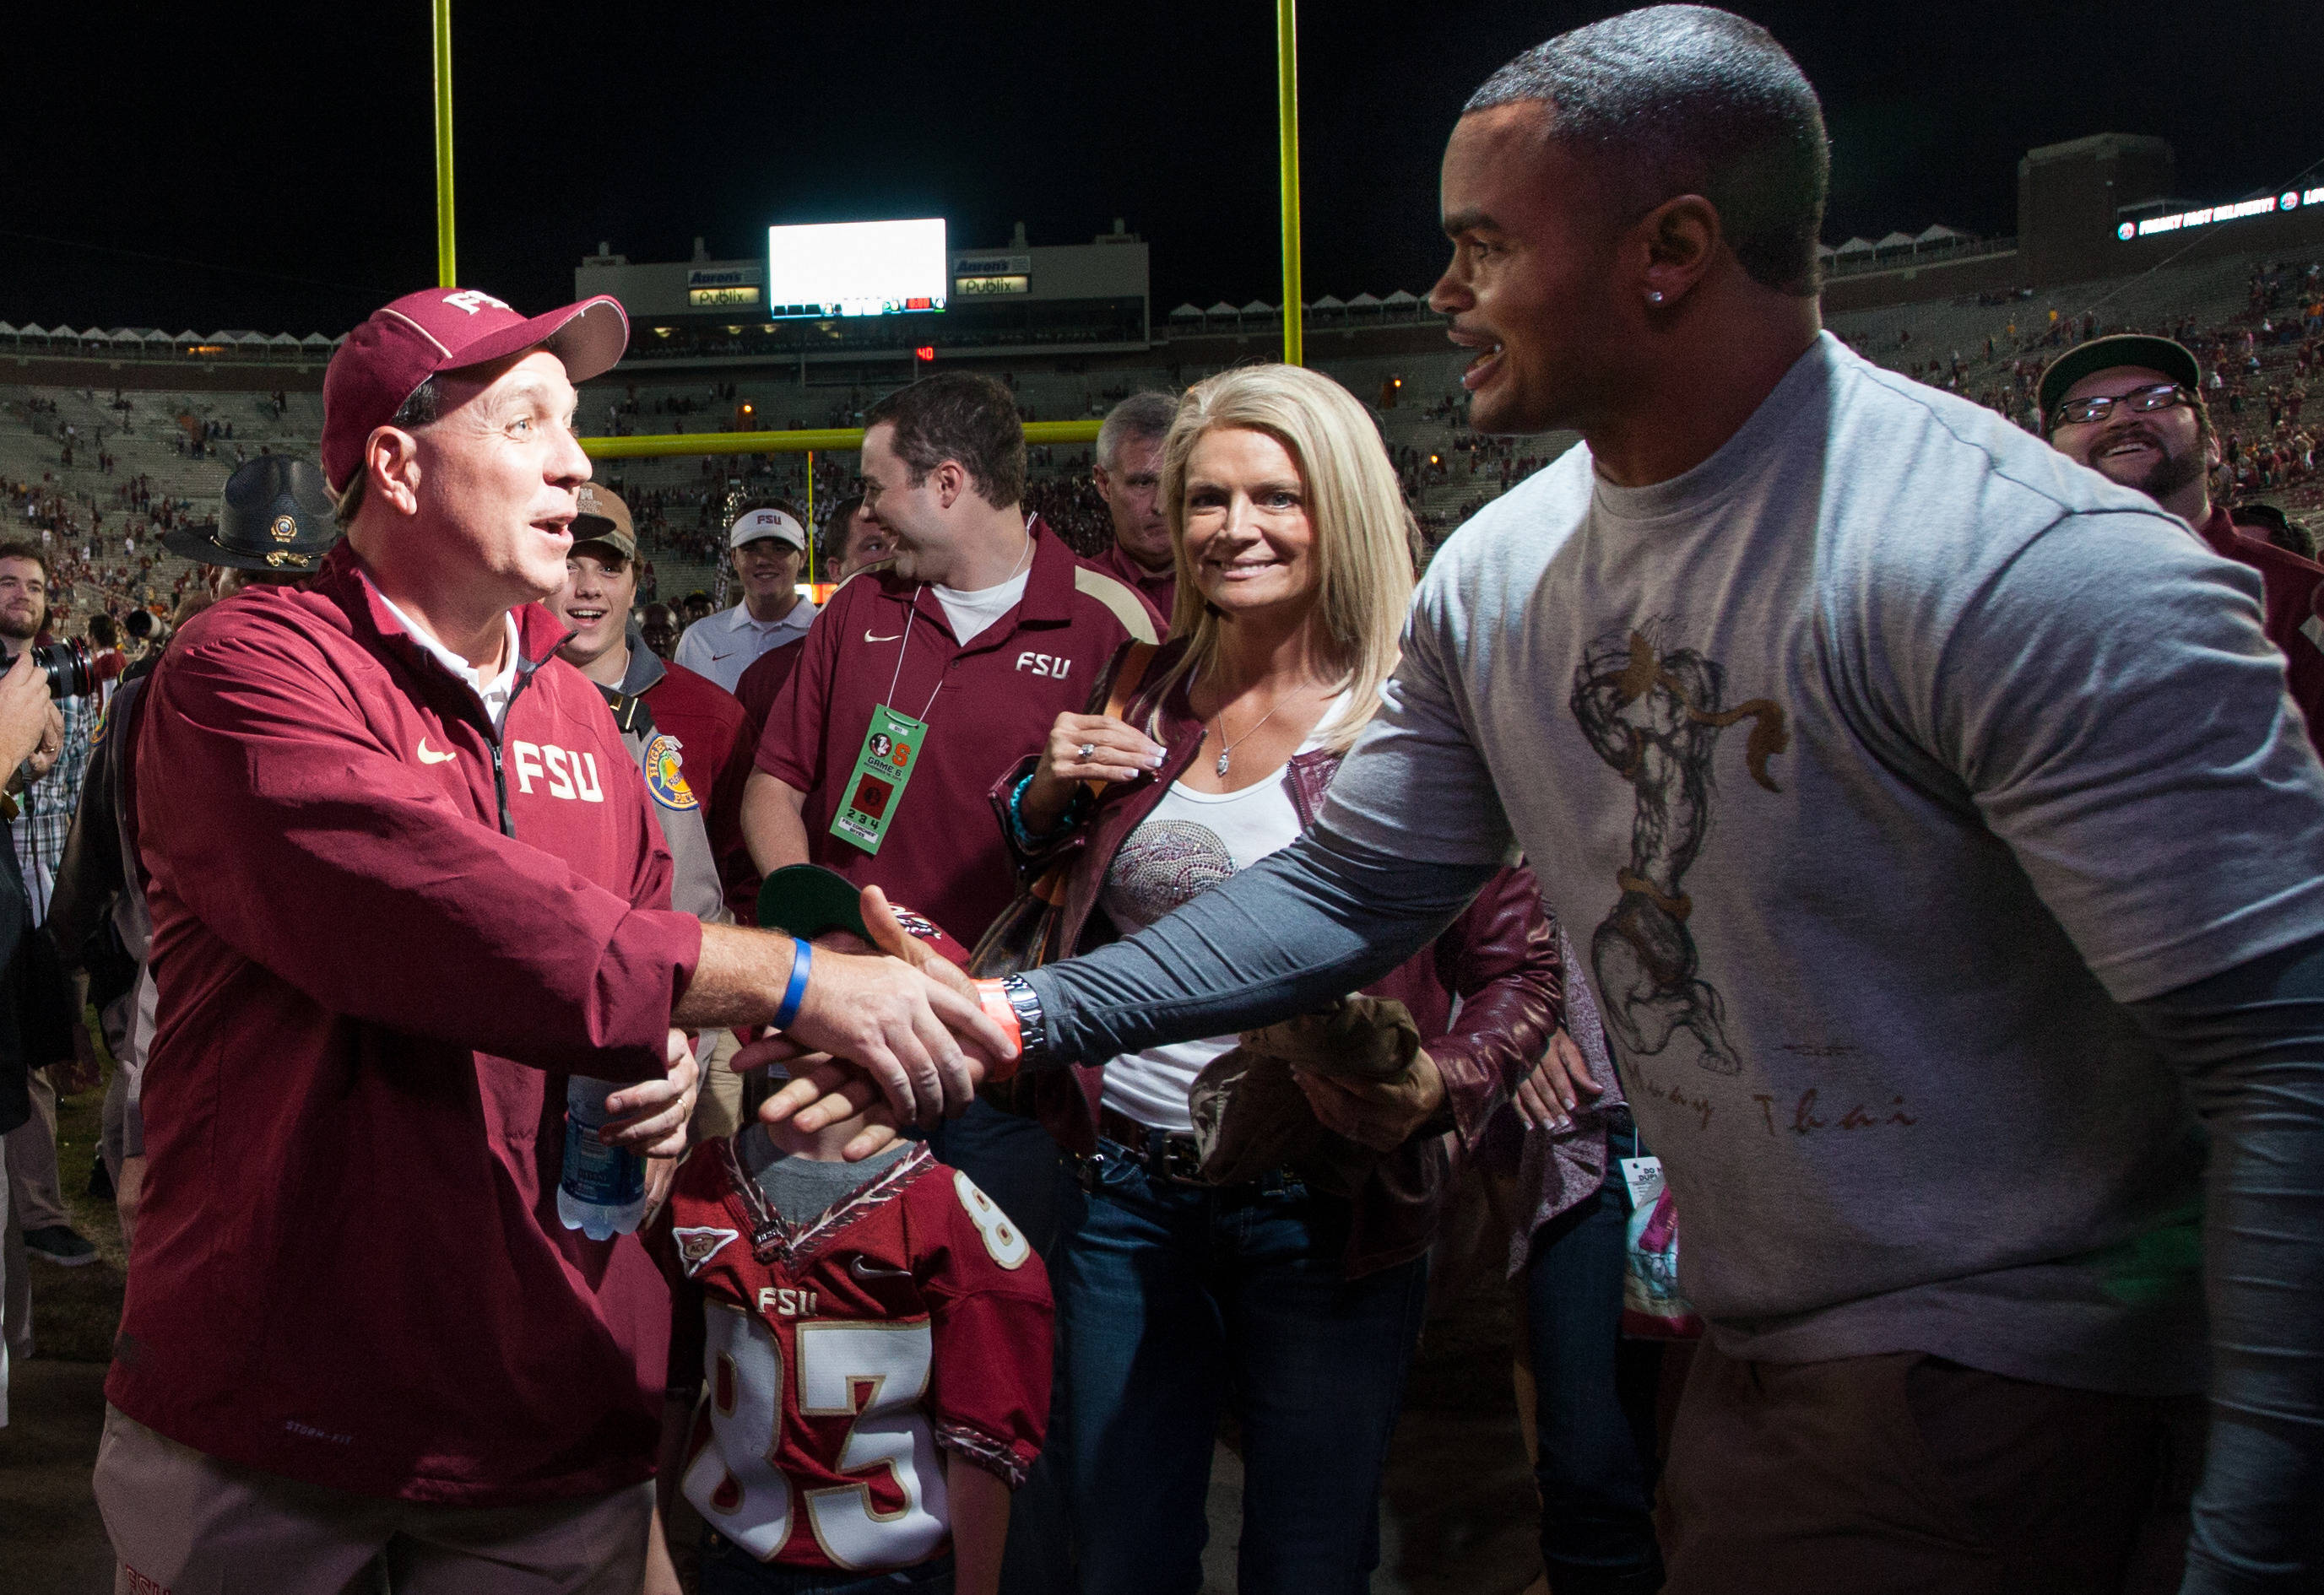 Jimbo Fisher shakes hands with Jamal Reynolds after FSU Football's 59-3 win over Syracuse on Saturday, November 16, 2013 in Tallahassee, Fla. Photo by Mike Schwarz.